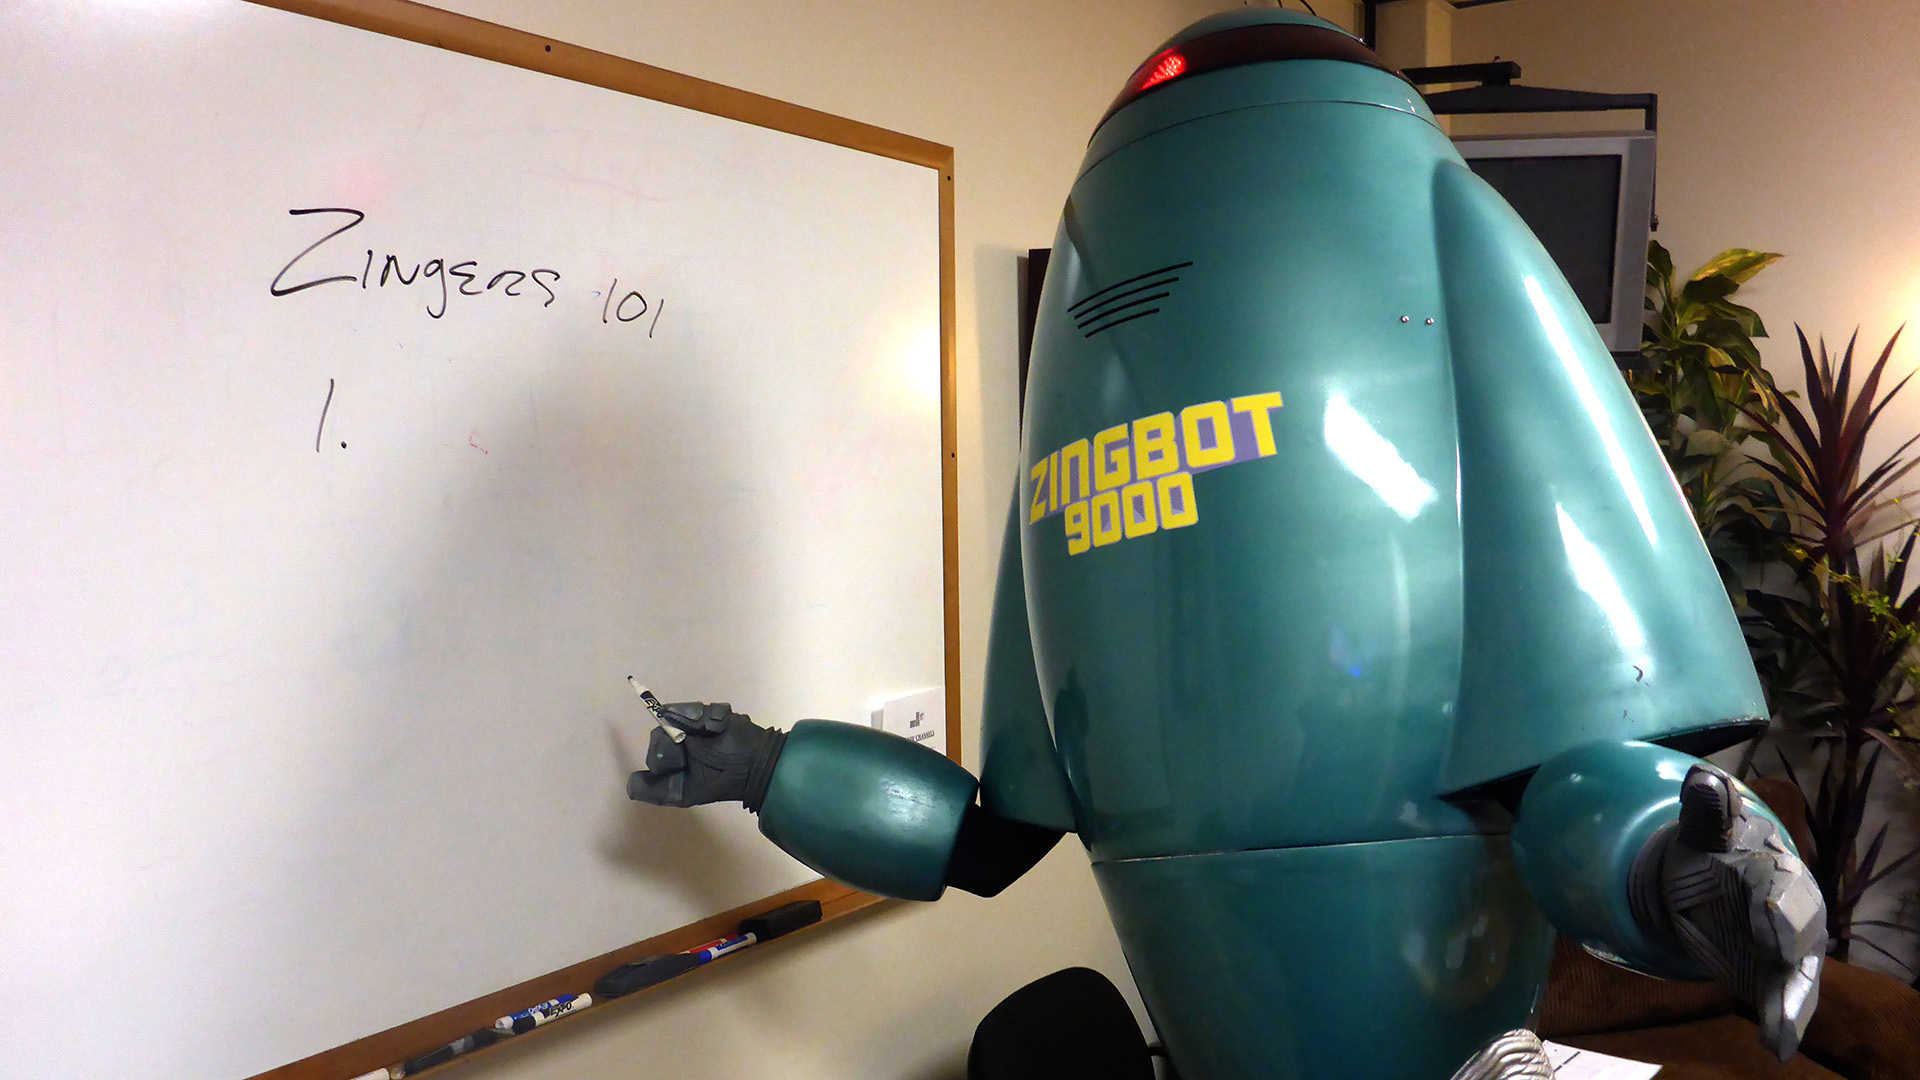 The first appearance by Zingbot